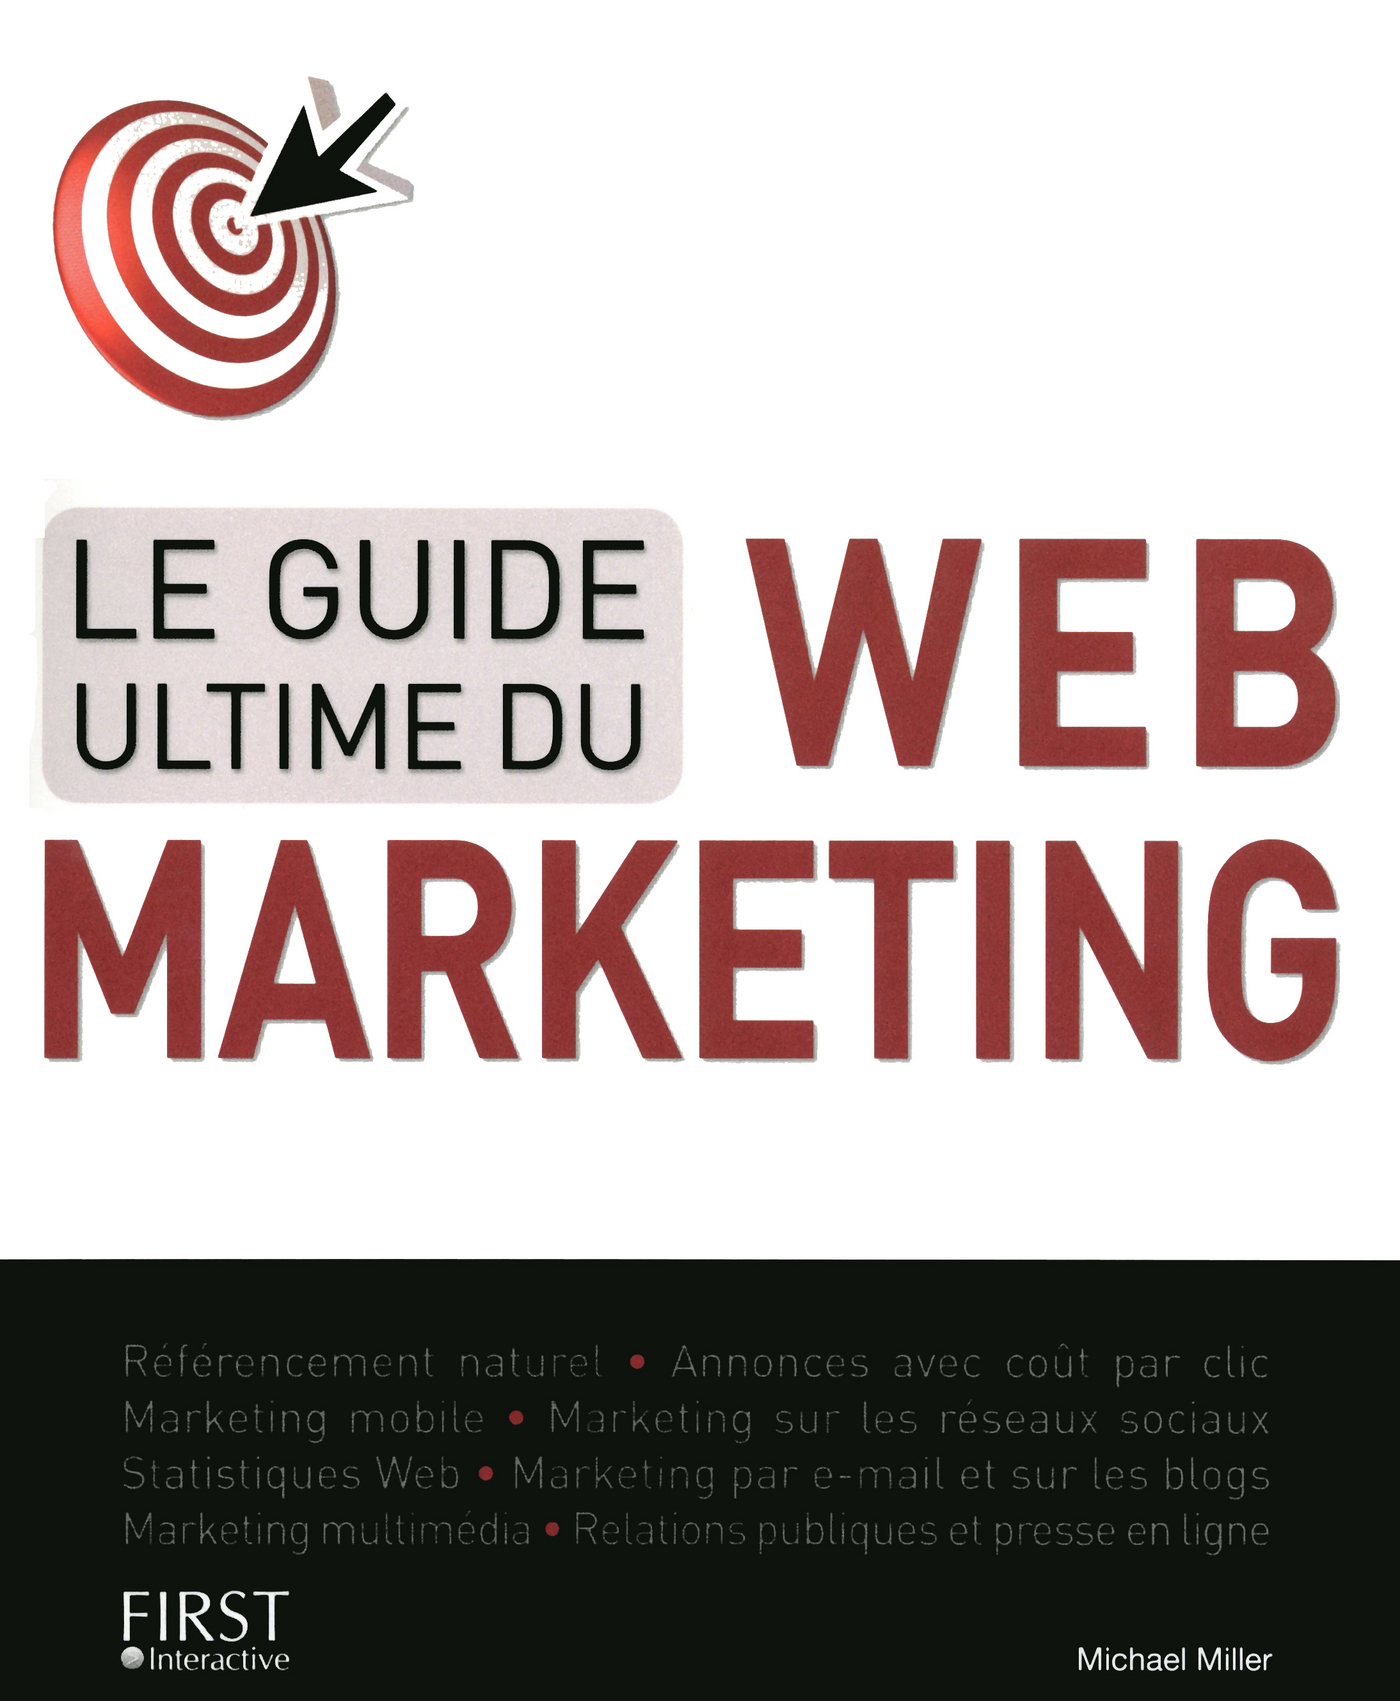 Le guide ultime du Web-Marketing